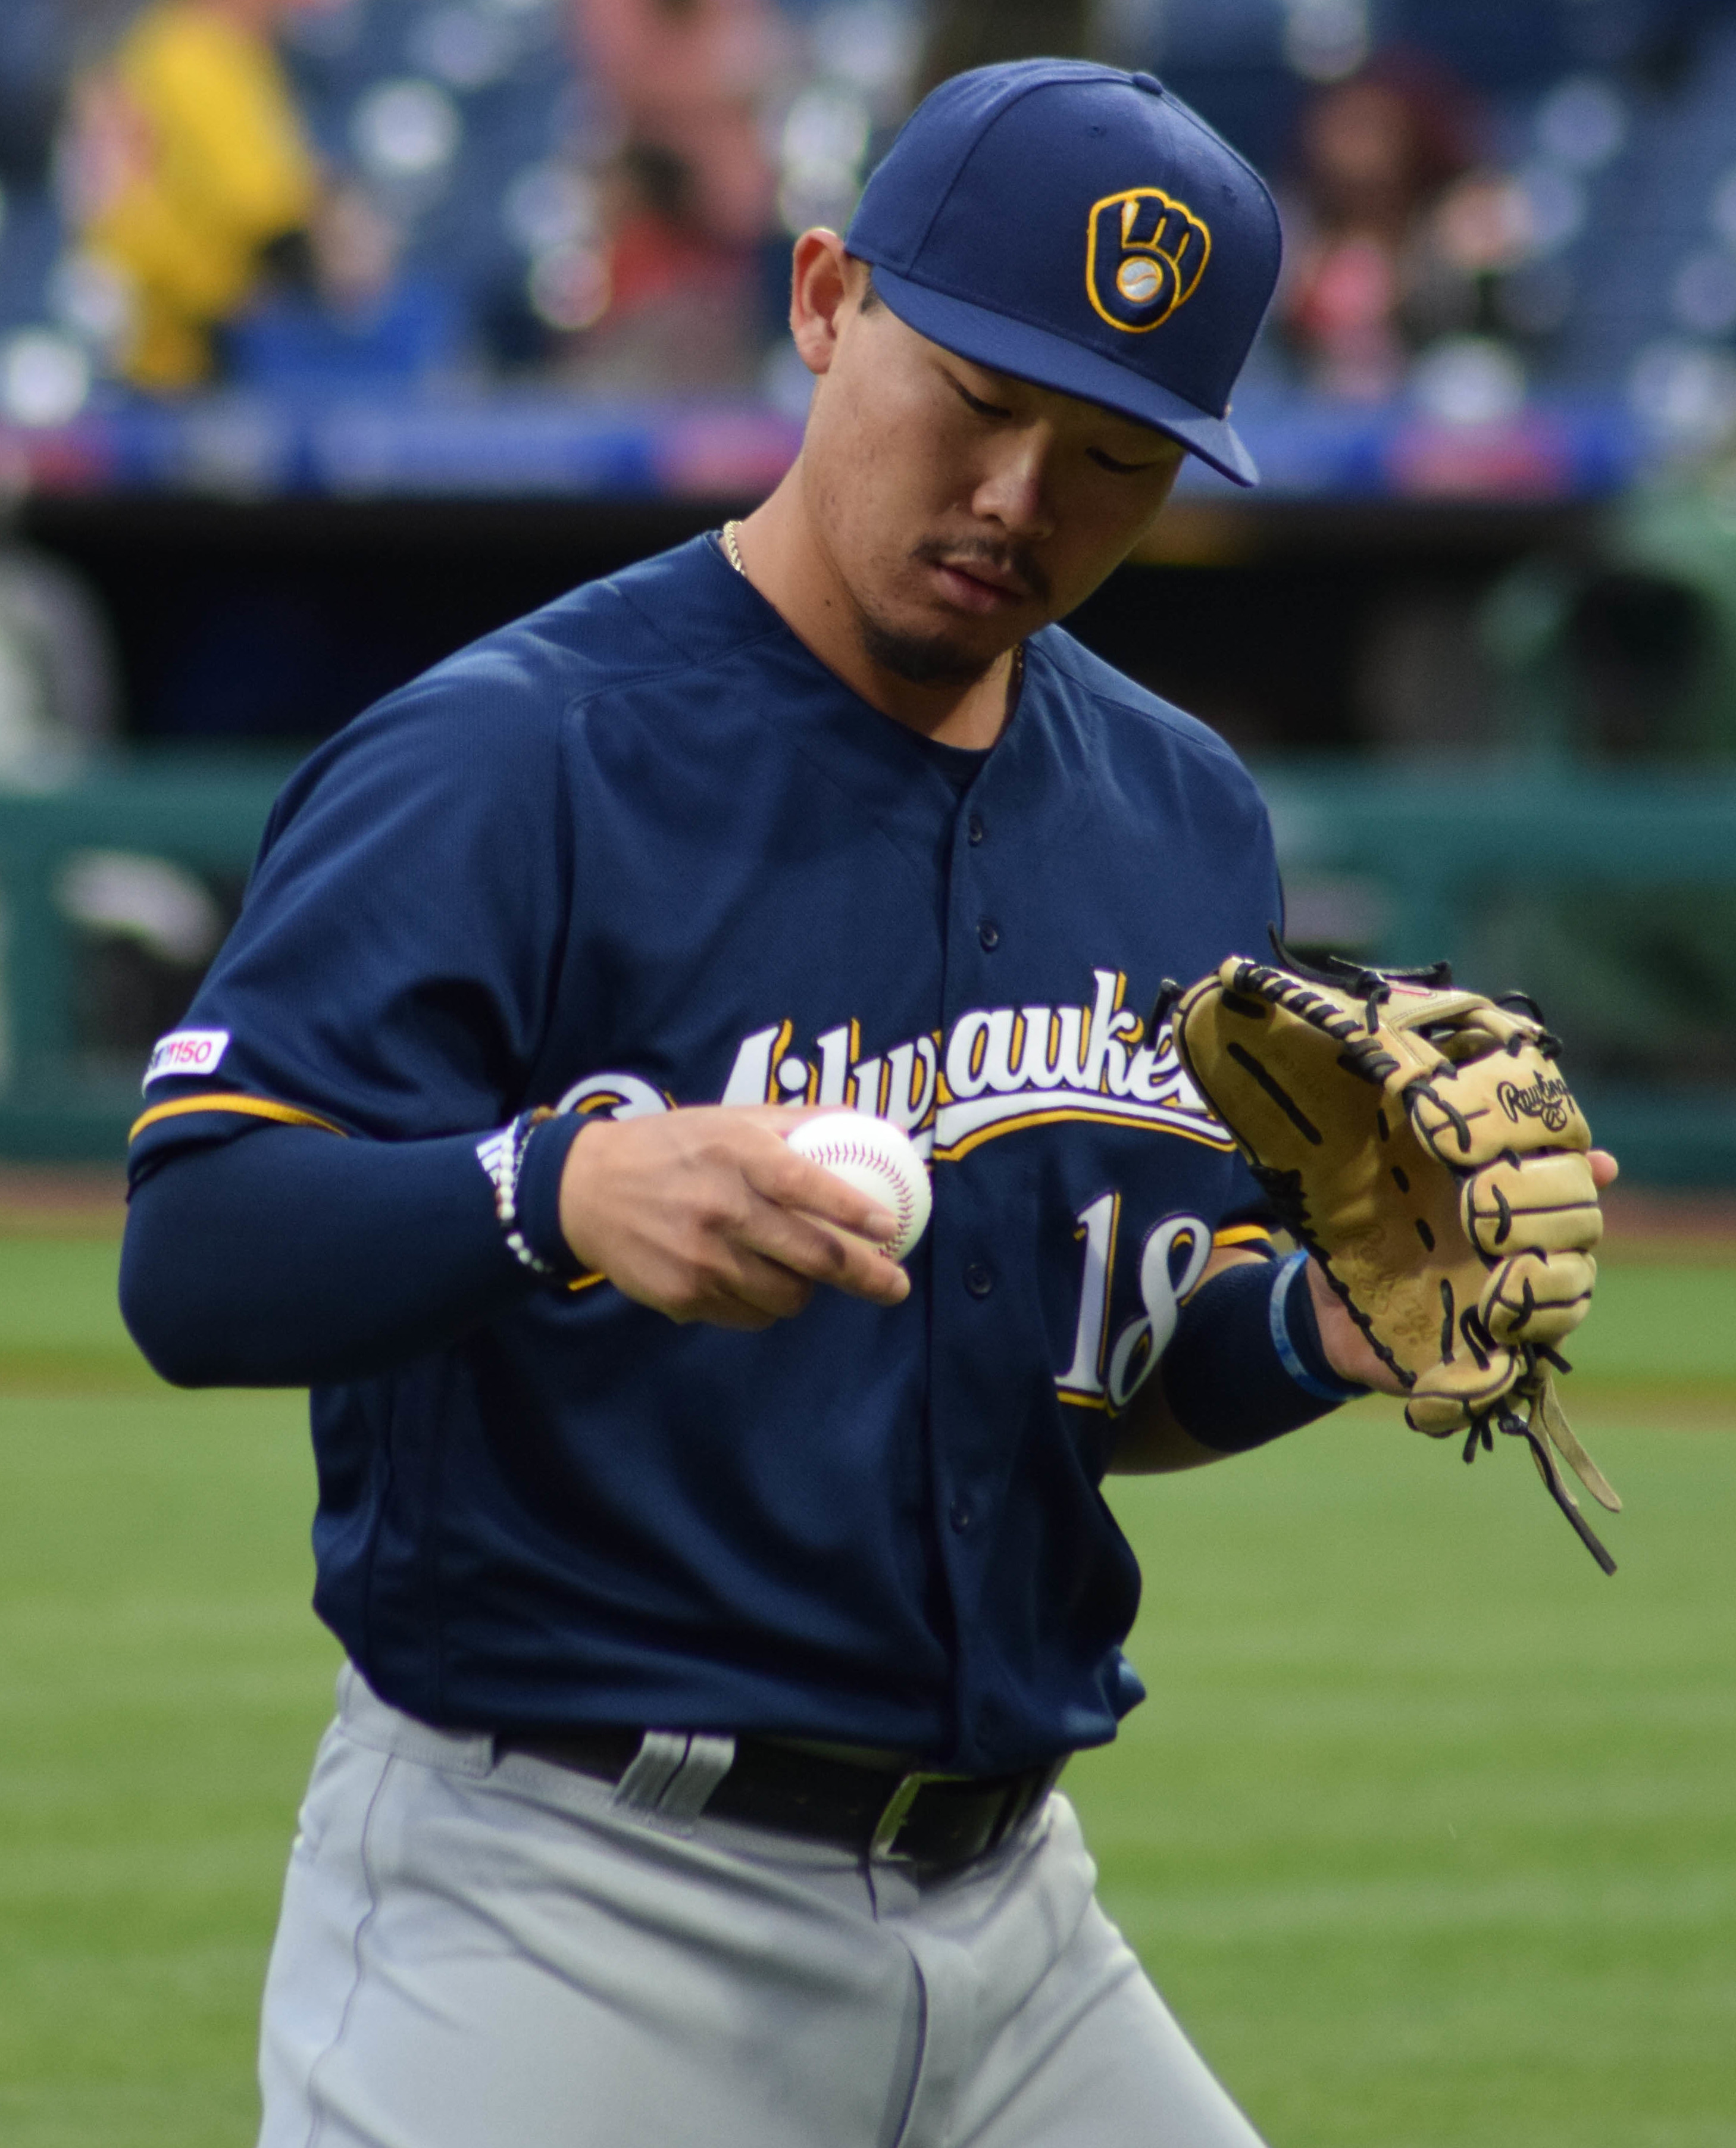 September 17, 2019 -- The Brewers defeated the Padres at home, 3 to 1. The Brewers top hitter was Keston Hiura and starting pitcher was Brandon Woodruff.